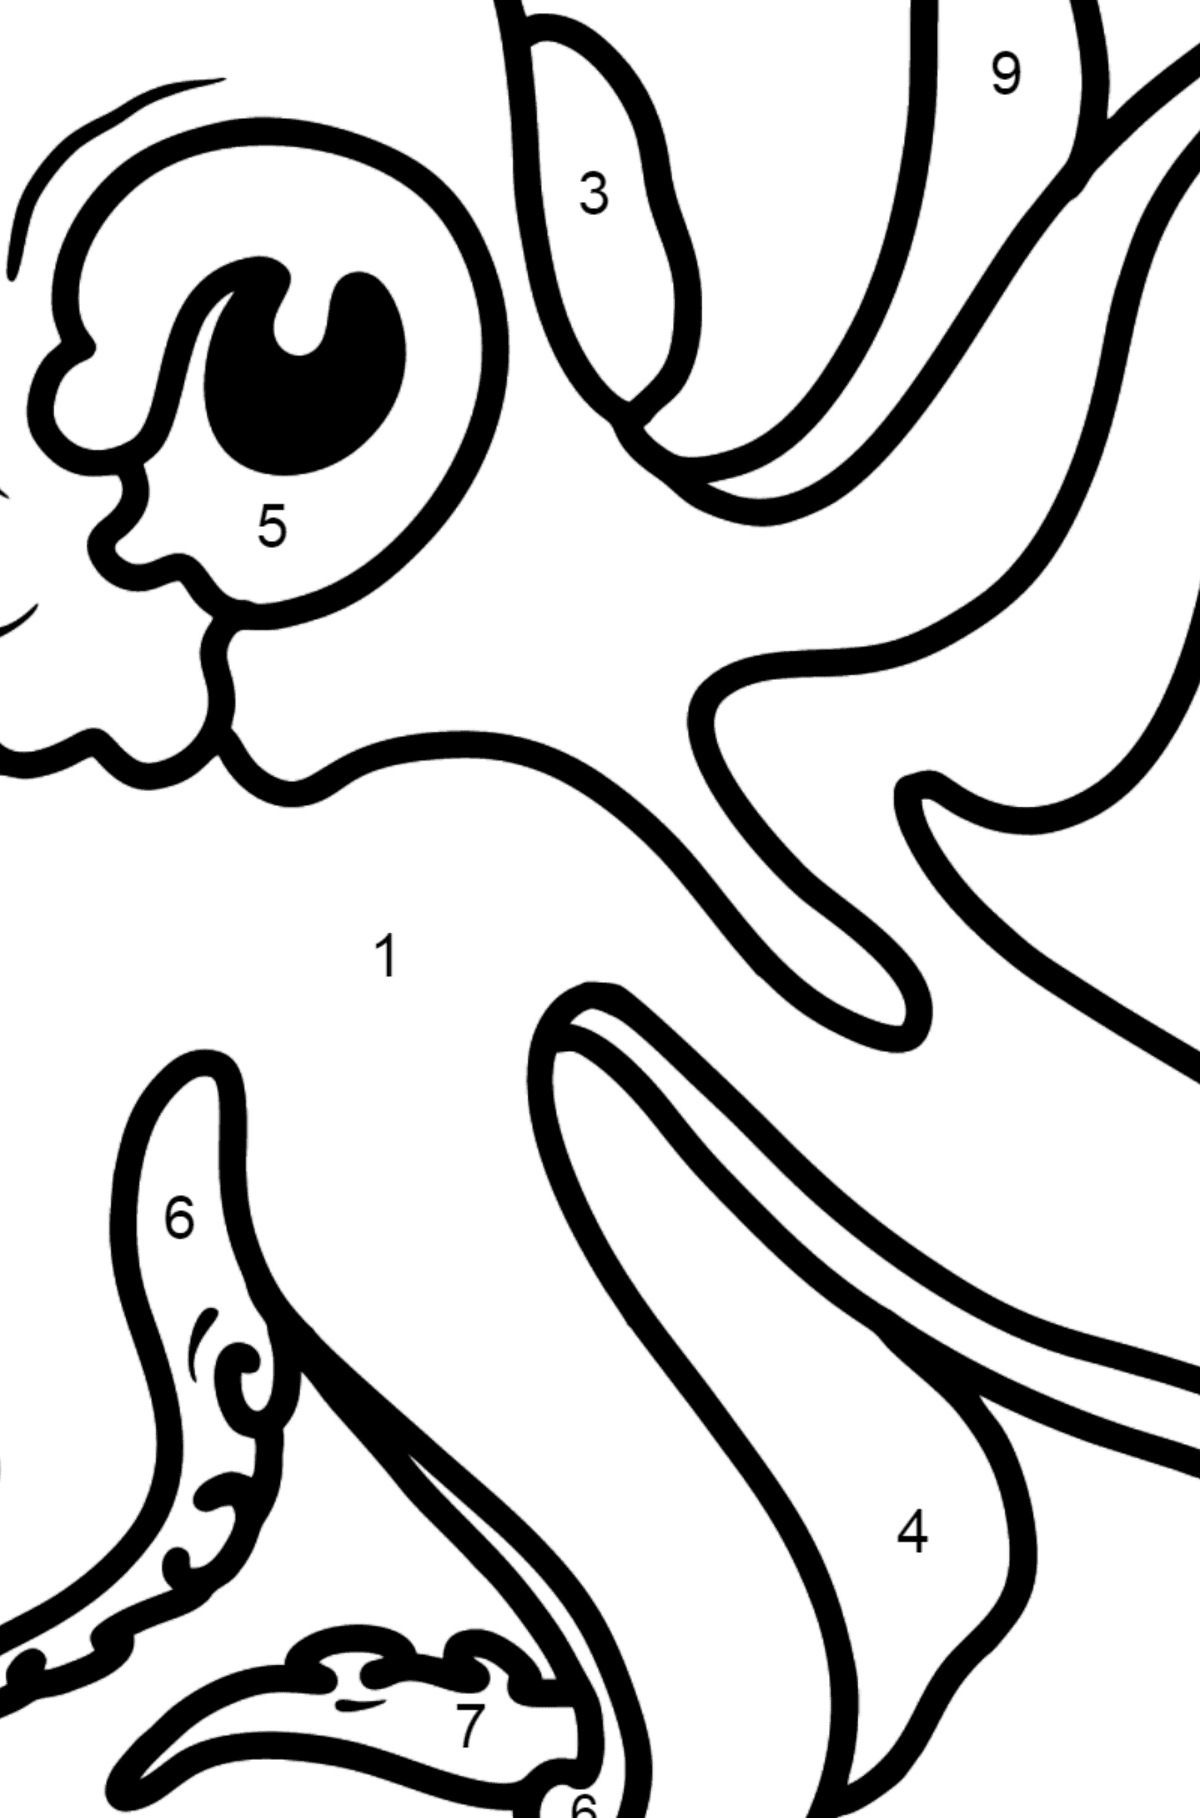 Octopus coloring page - Coloring by Numbers for Kids